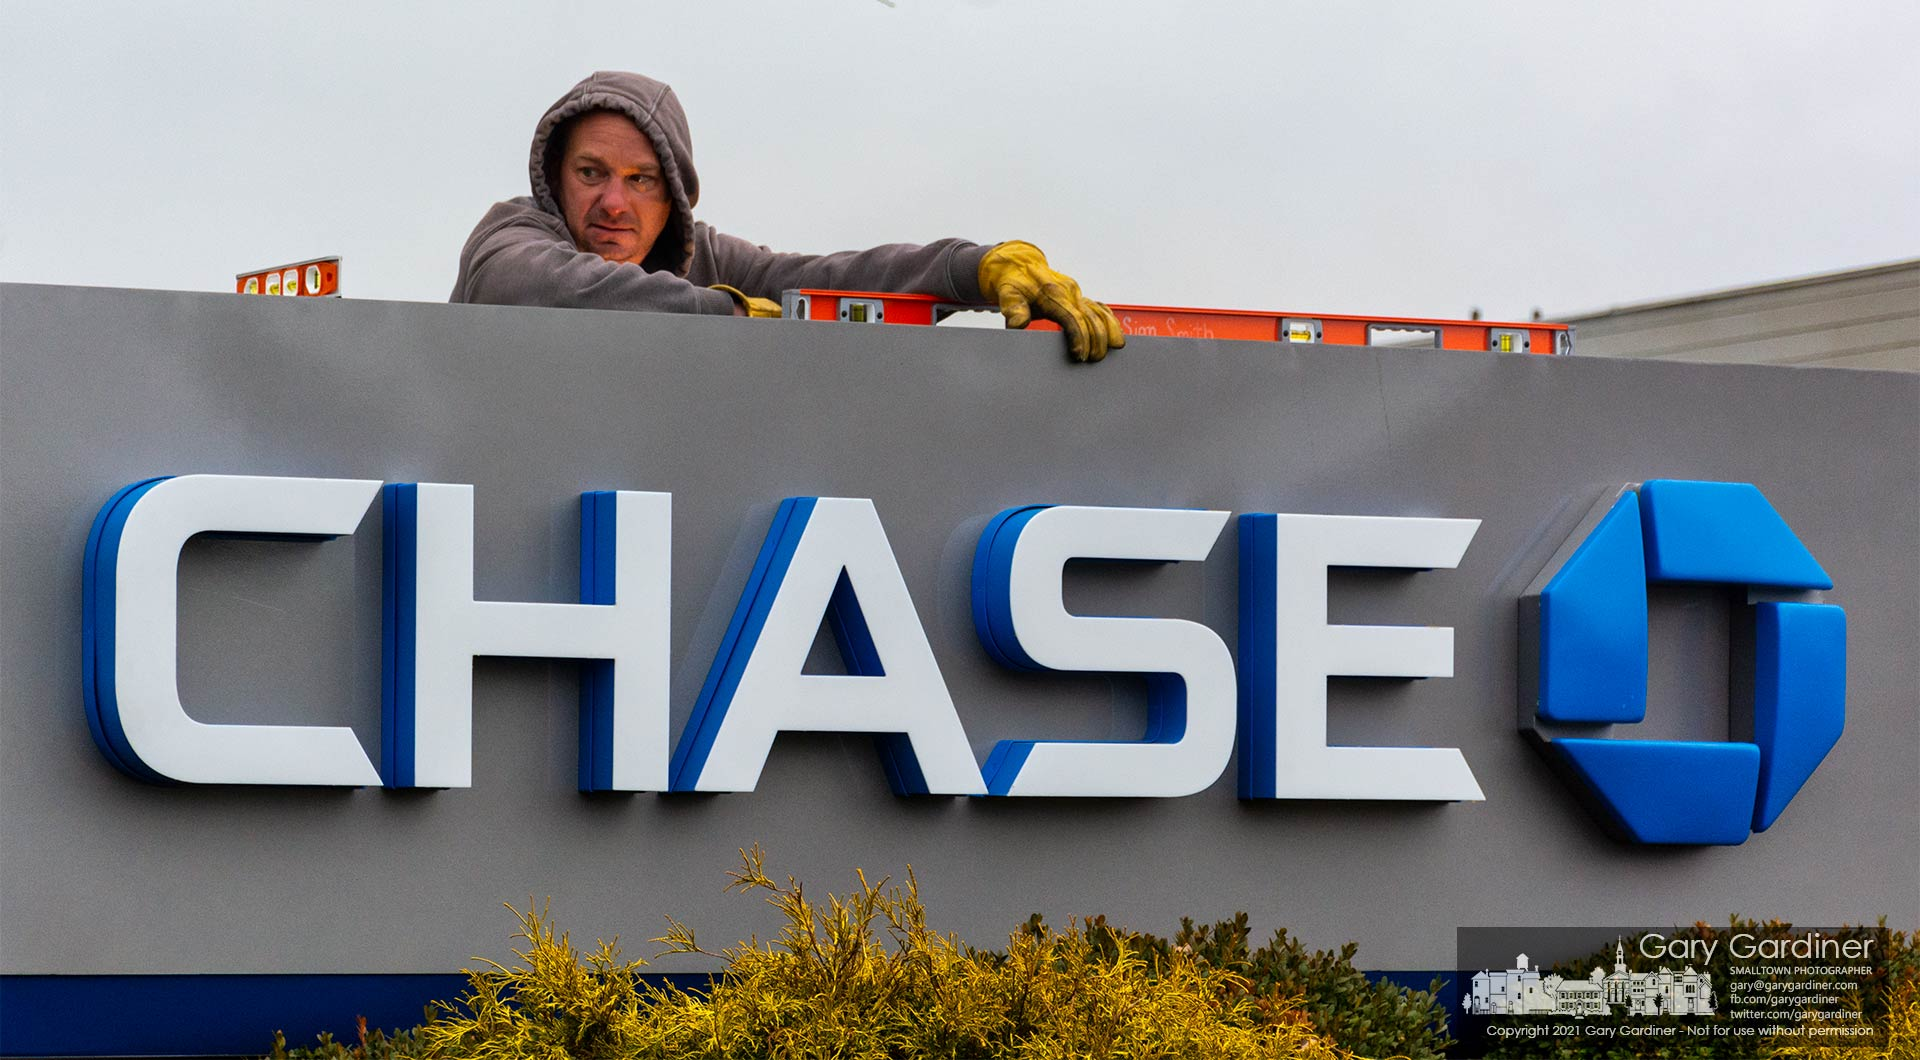 A worker diverts his eyes from the lights of a welder attaching the new Chase Bank sign to its pedestal on Huber Village Parkway. My Final Photo for Jan. 6, 2021.